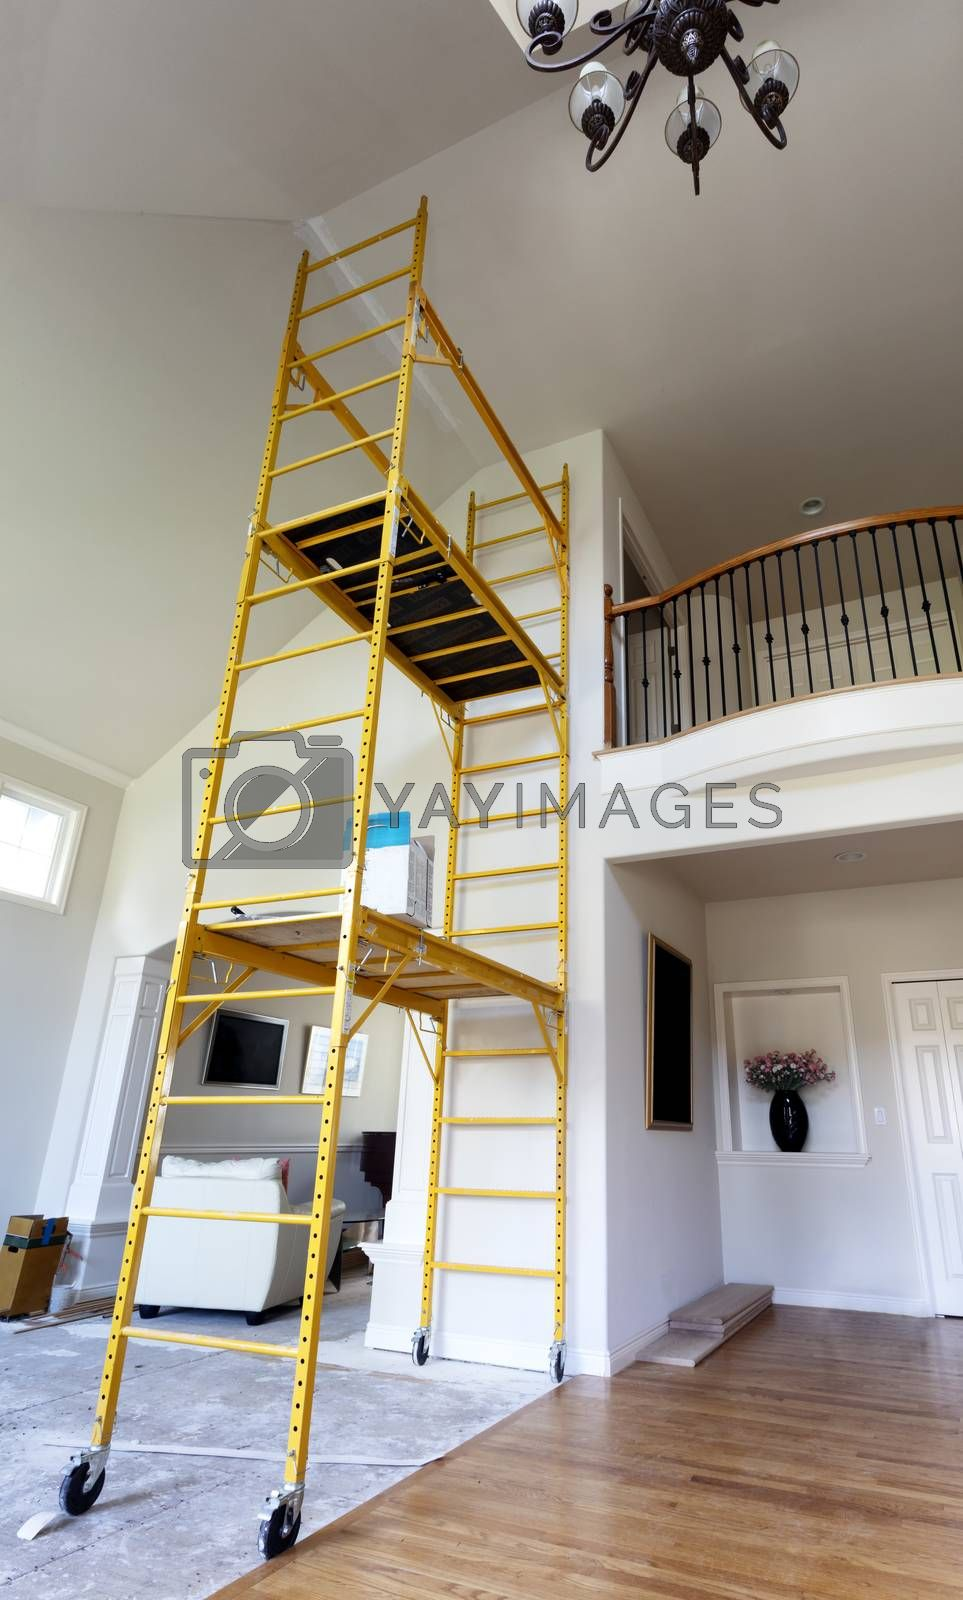 Scaffolding setup for repairing home ceiling and painting purposes